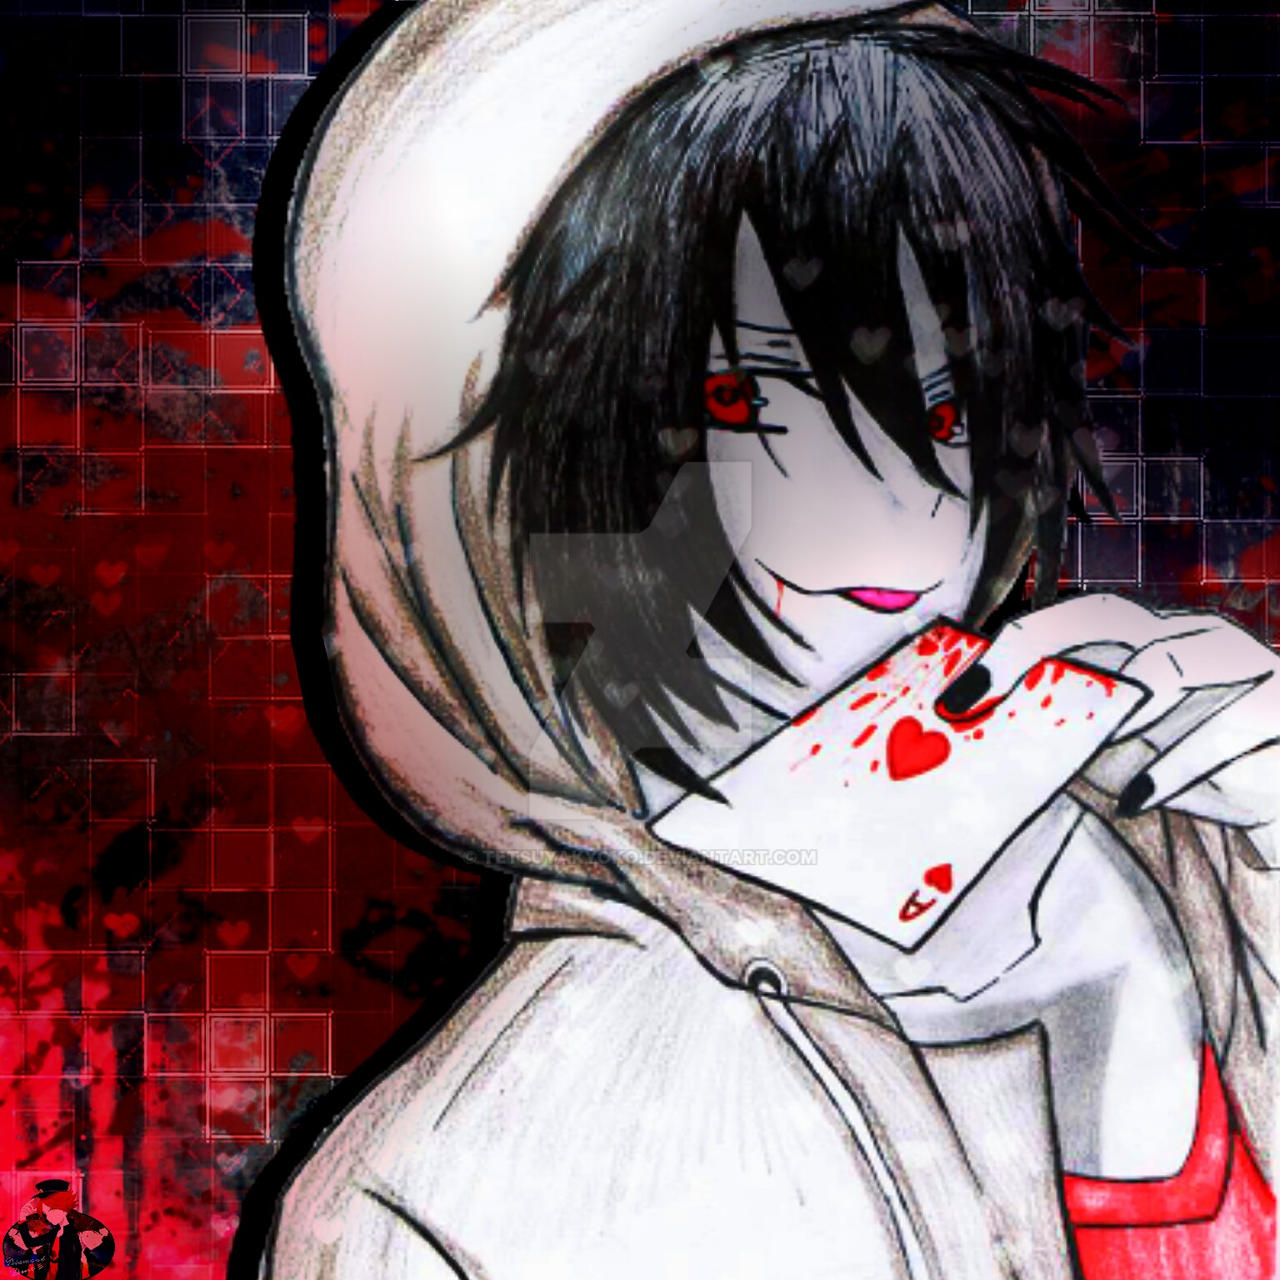 Jeff the killer anime version by TetsuyaKyoko on DeviantArt